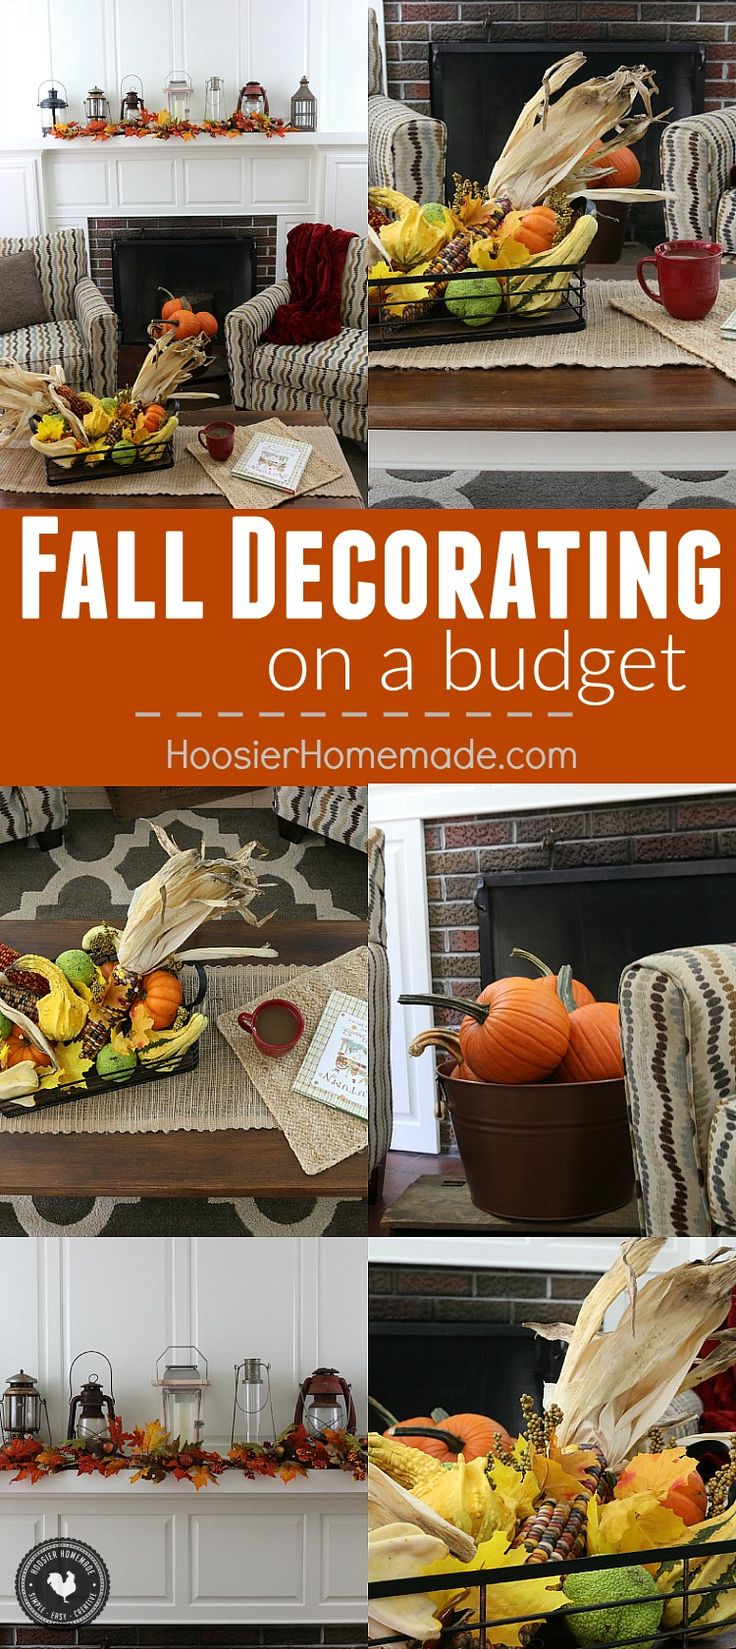 Tips for home decorating on a budget 28 images for Tips for building a house on a budget